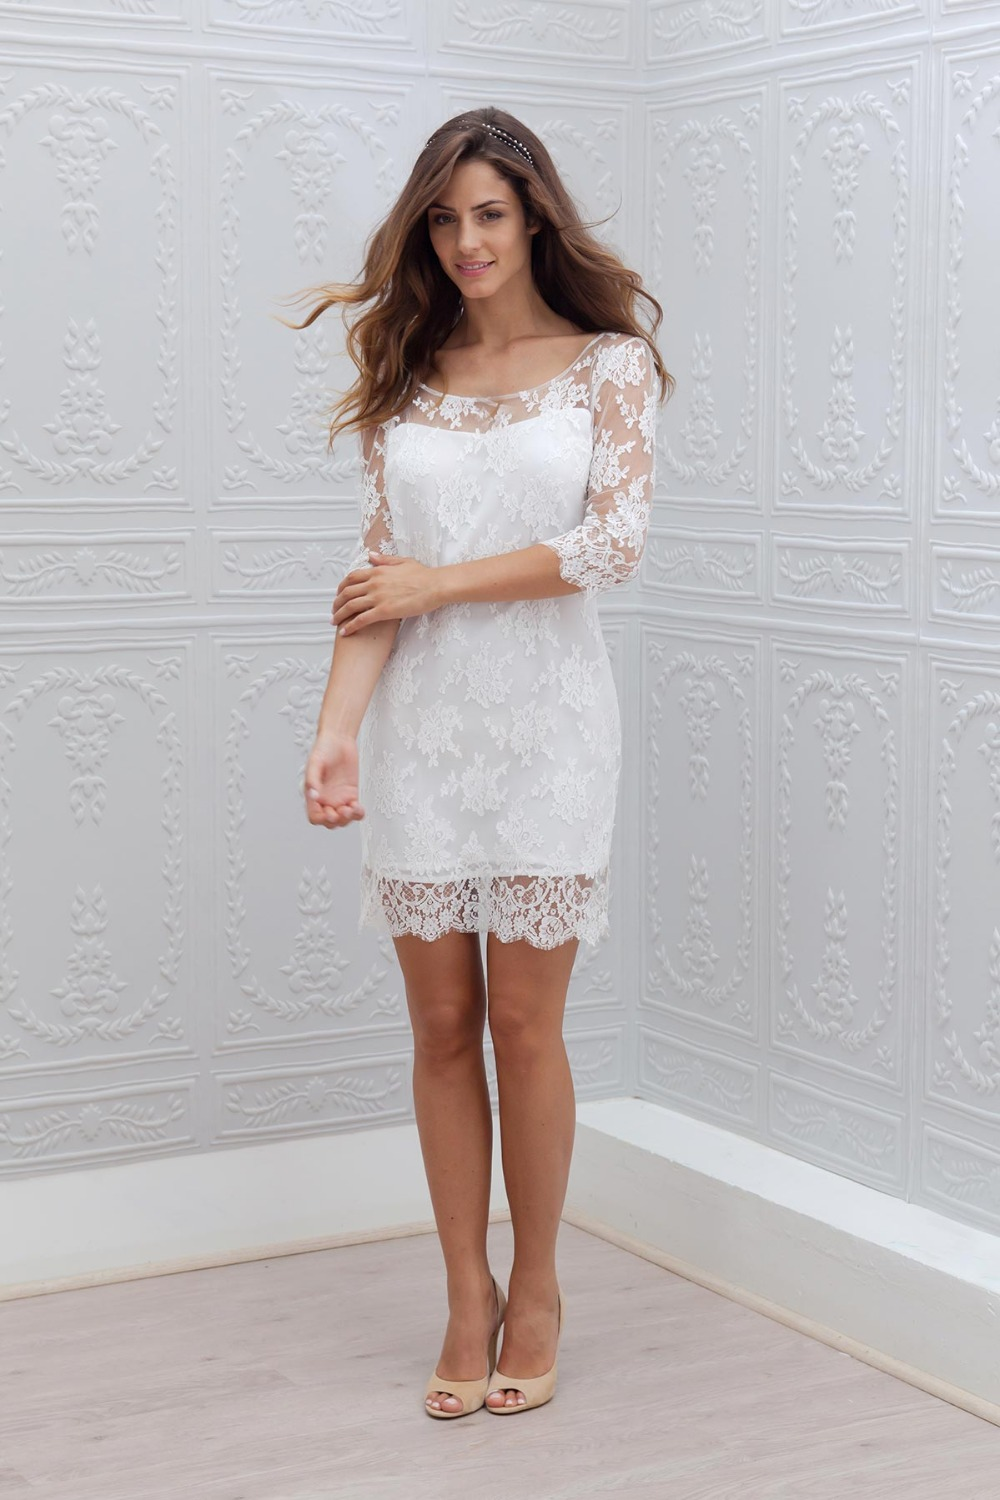 New Short Mini Sheath Fitted Informal Beach Lace Reception Boho Wedding Dresses Half Sleeves Modest Bridal Gowns Robe Boho Wedding Dress Bridal Gownboho Wedding Aliexpress